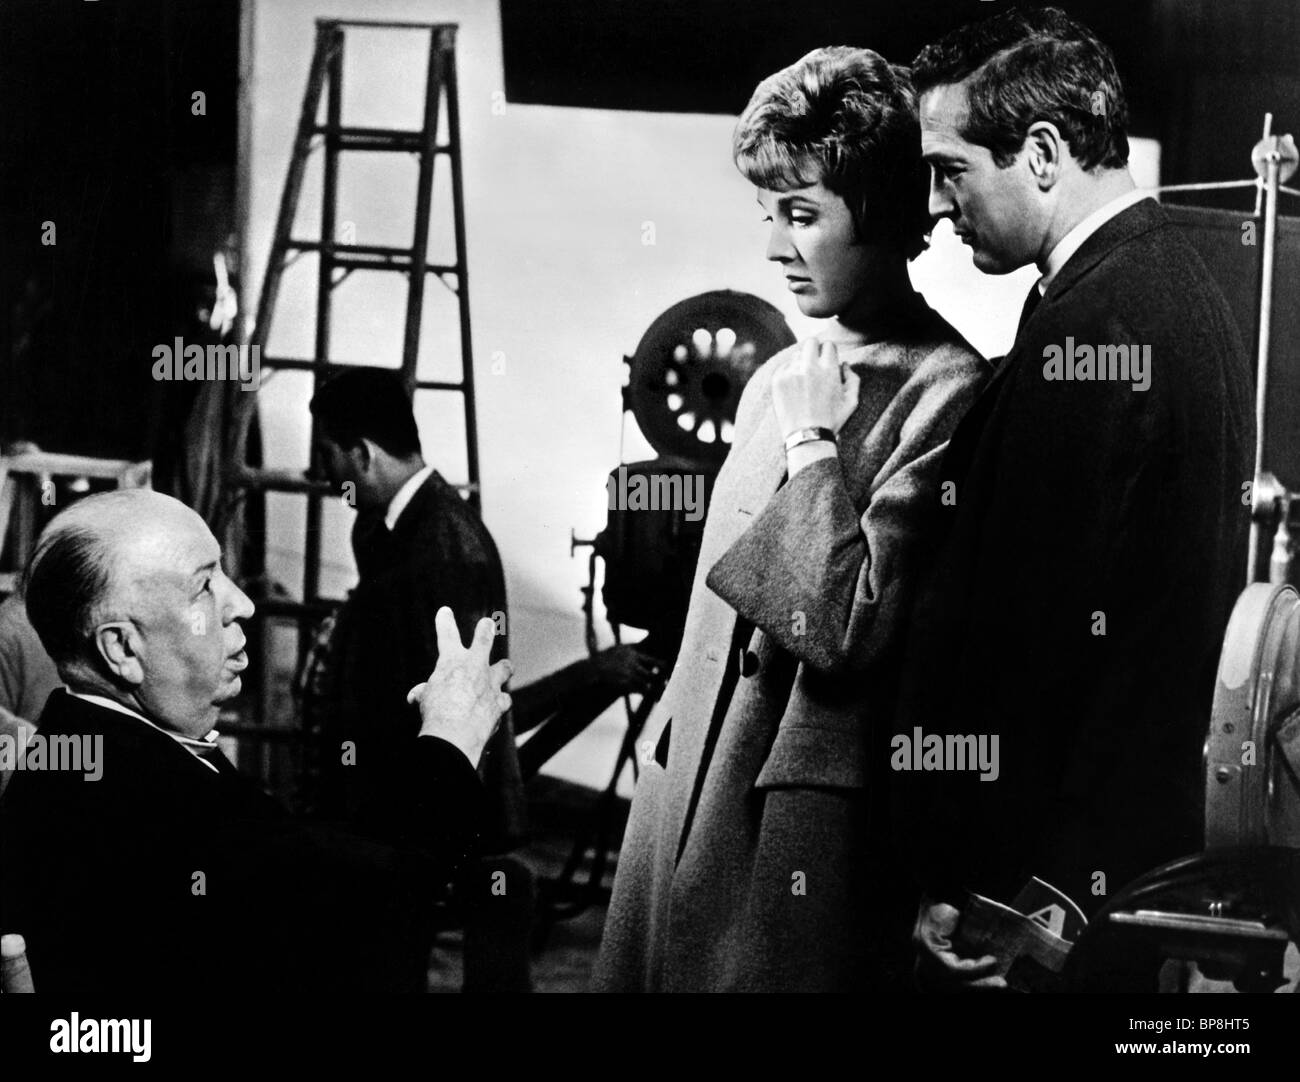 Torn curtain julie andrews - Alfred Hitchcock Julie Andrews Paul Newman Torn Curtain 1966